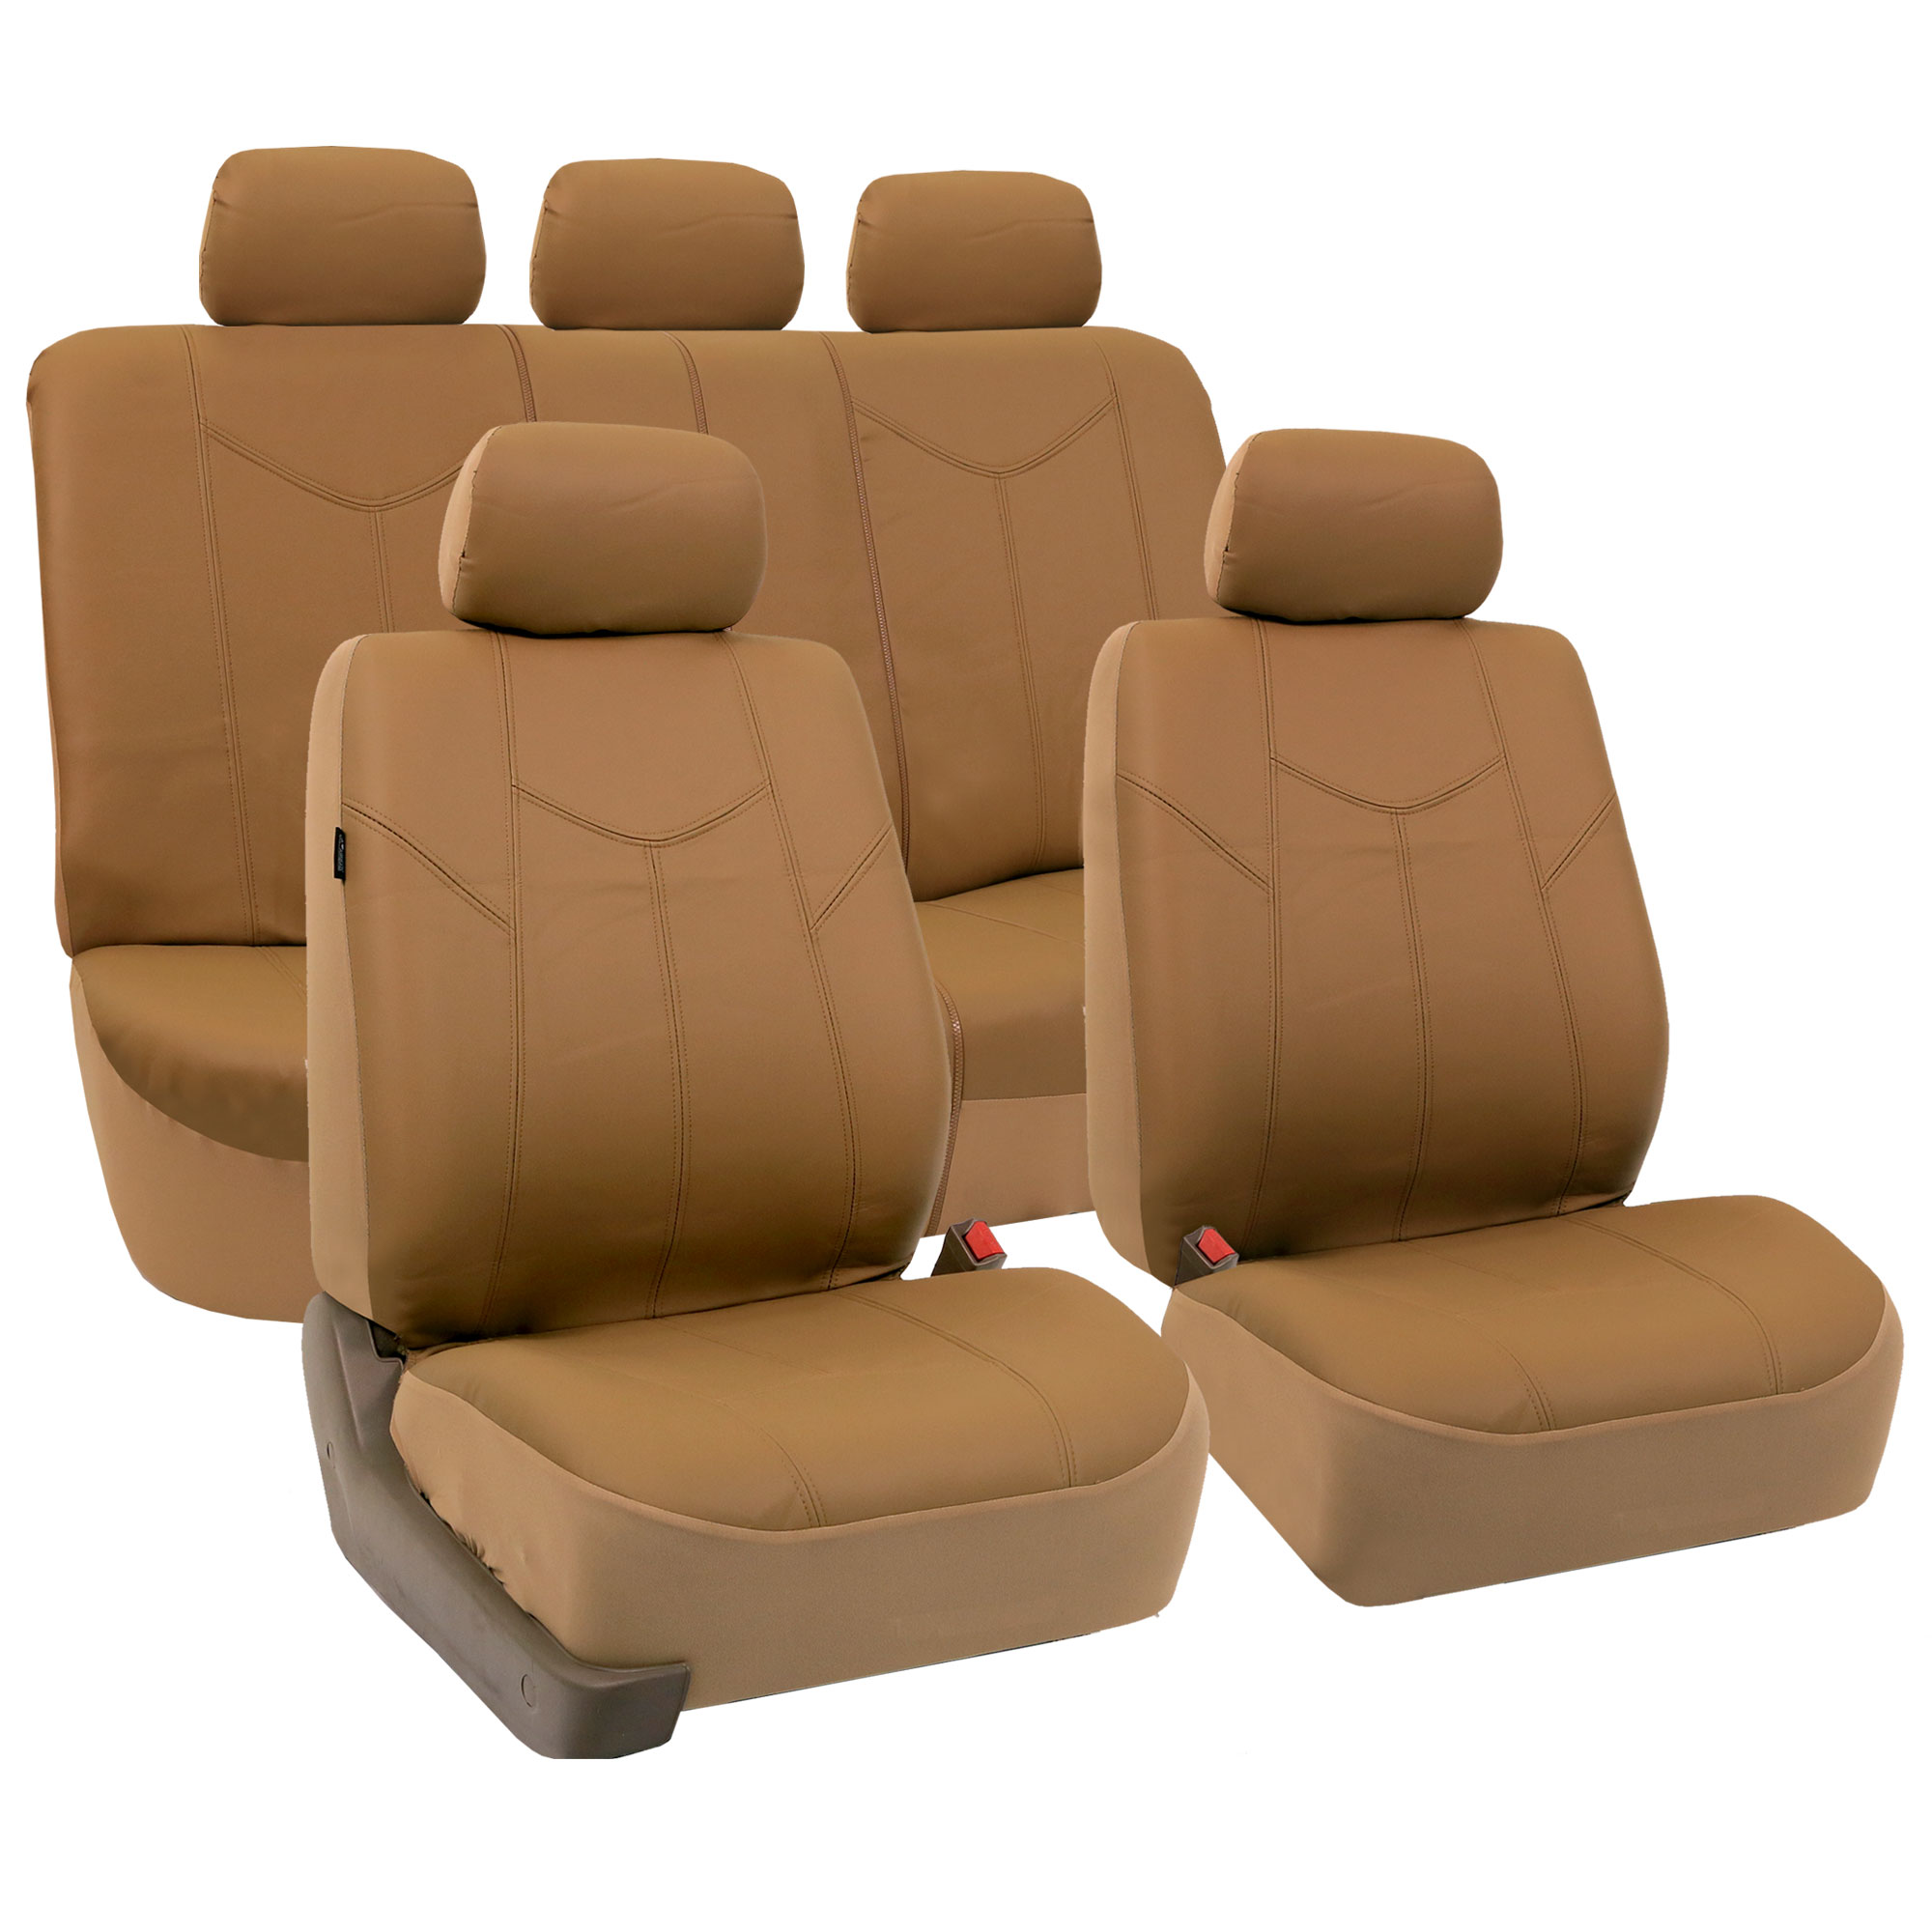 Rome pu leather car seat covers full set air bag safe for Is ready set decor legit